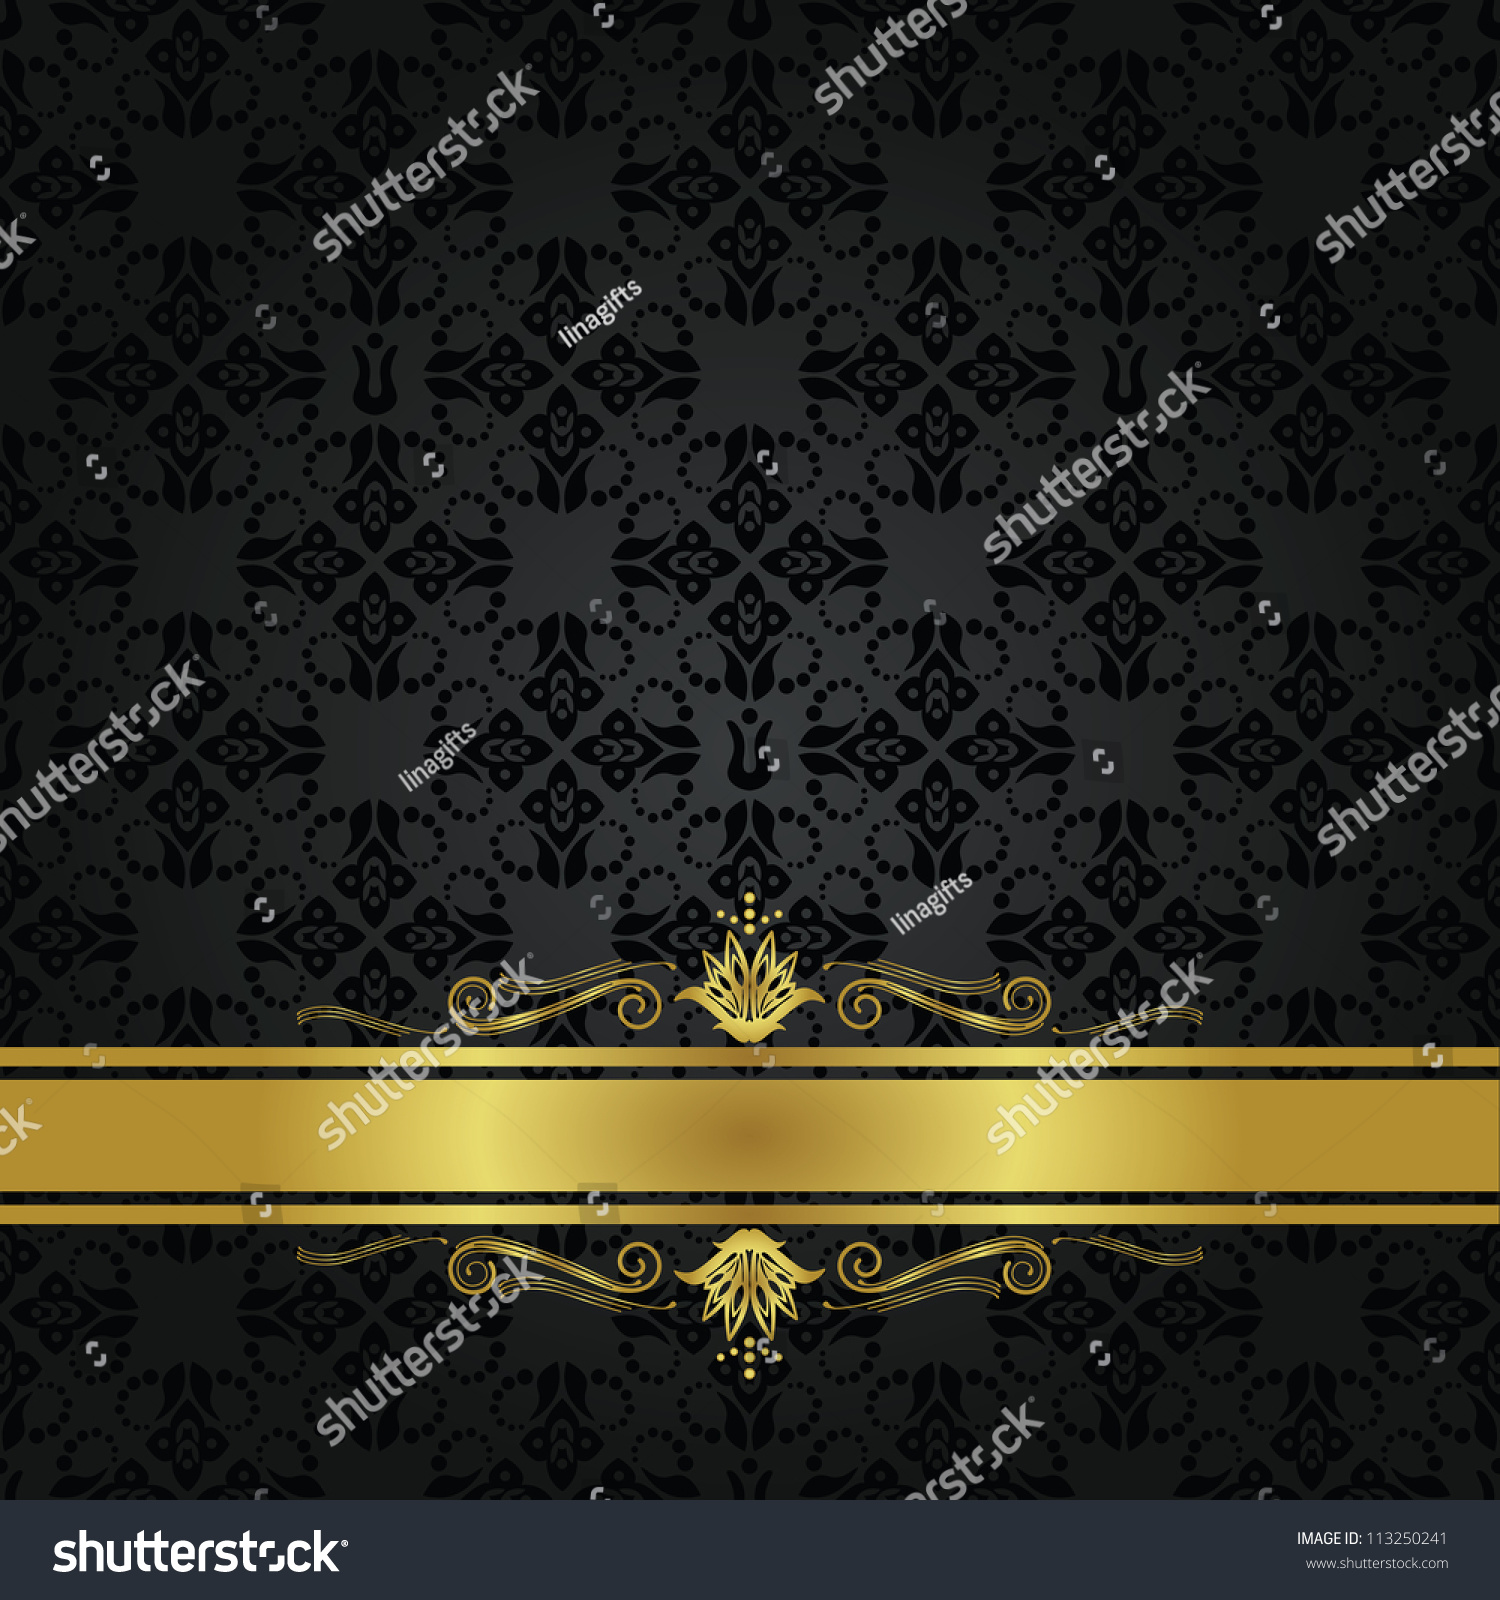 Book Cover Black And Gold : Seamless repetitive small black element pattern stock